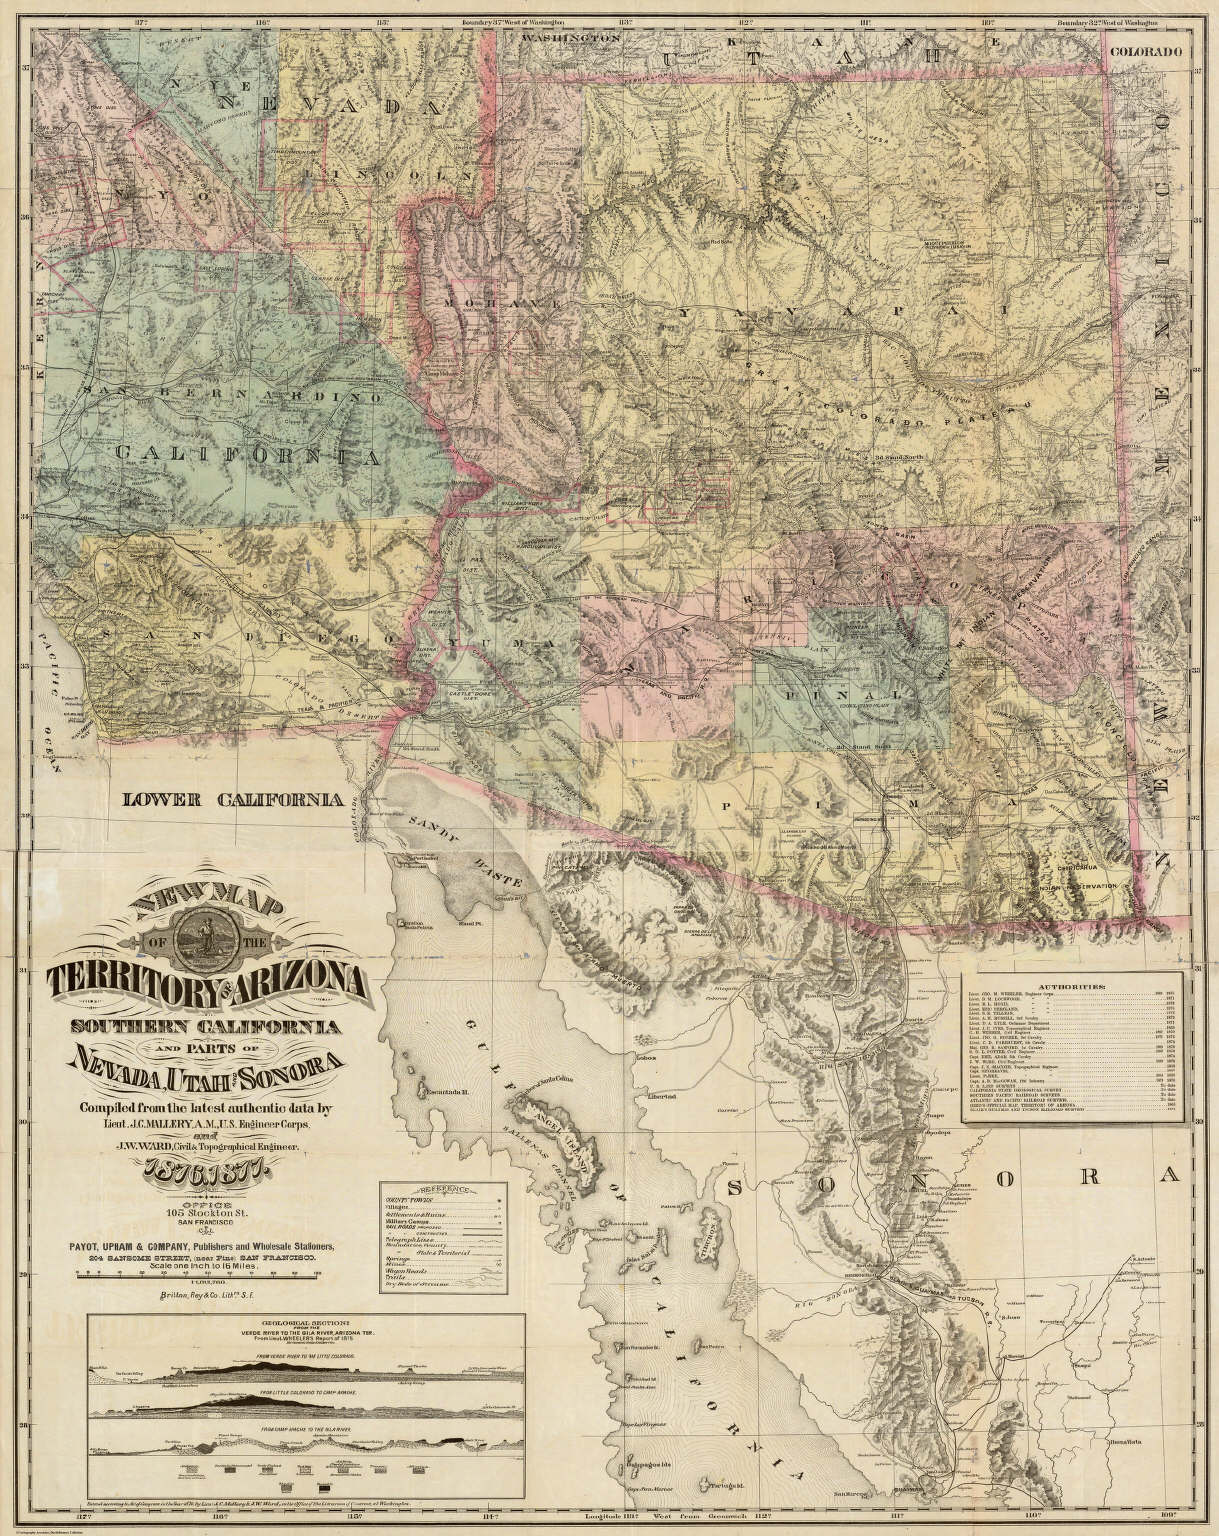 Map Of The Territory Of Arizona Southern California And Parts Of